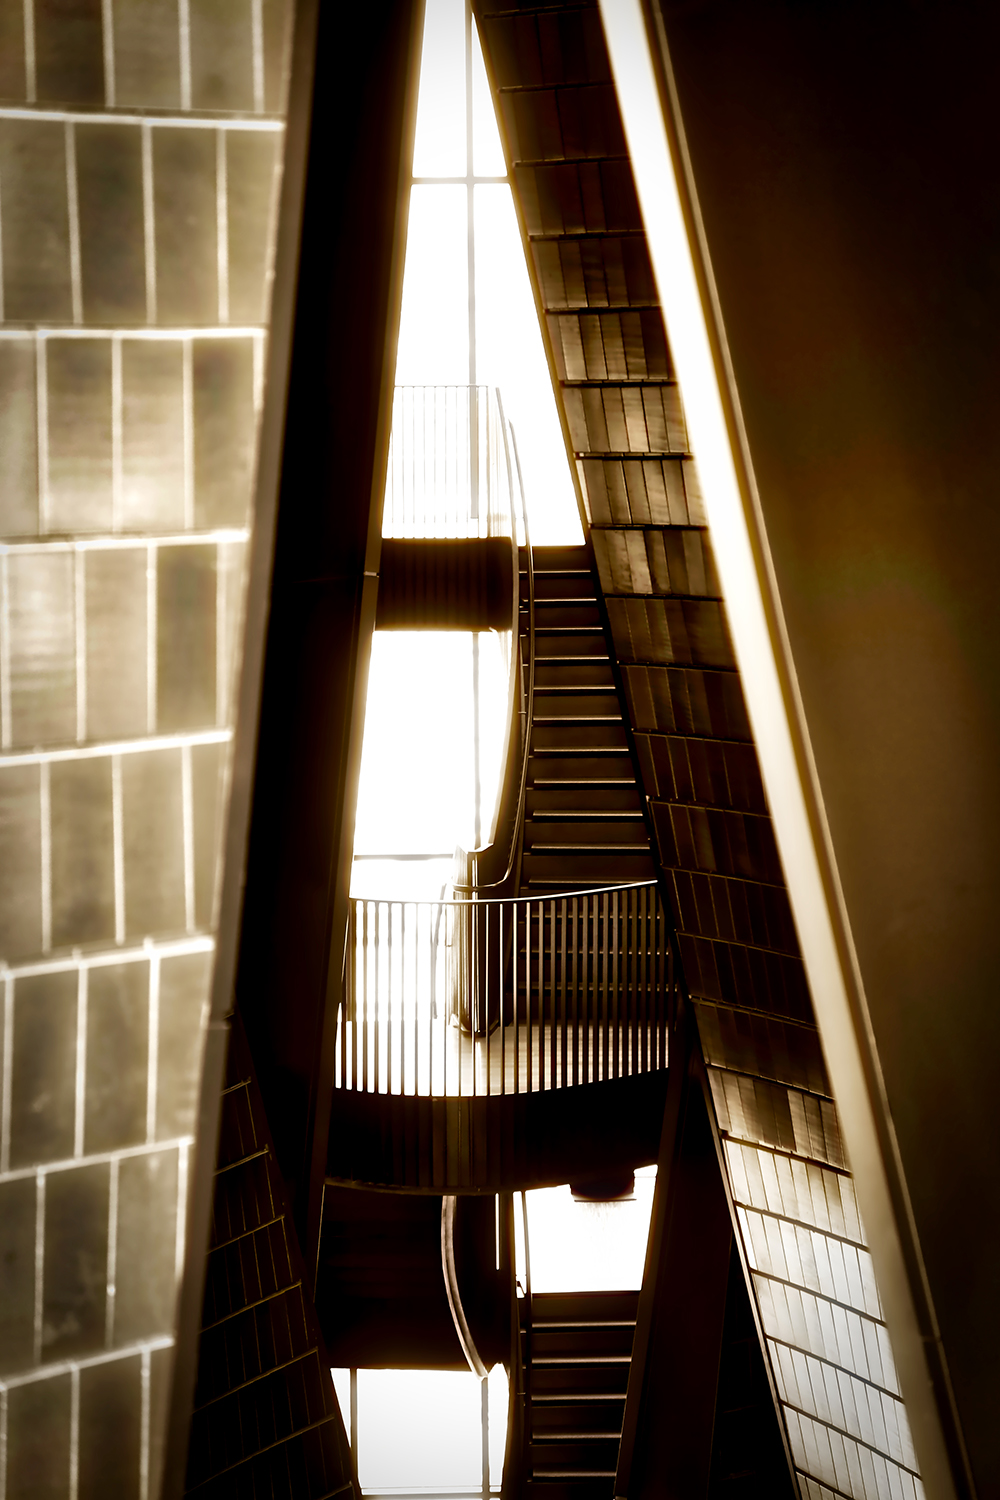 National Music Centre Staircase photographed using the natural light entering the building from all angles